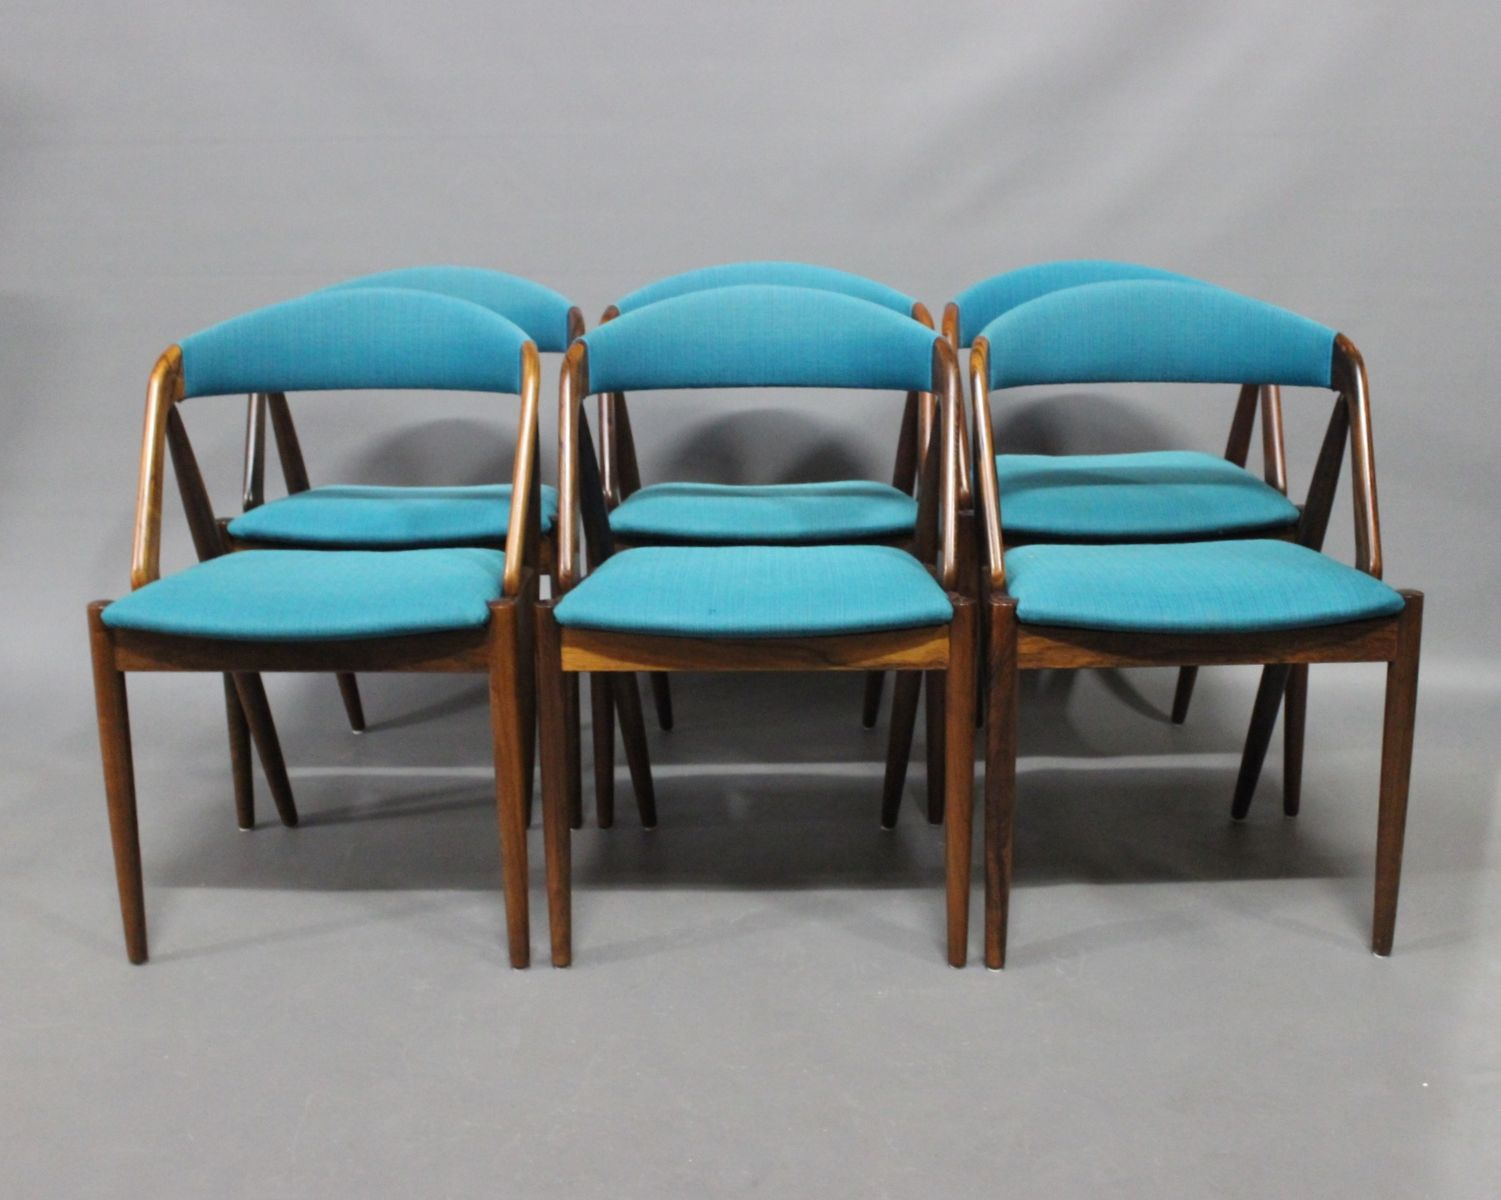 Model 31 Dining Room Chairs by Kai Kristiansen and Schou Andersen ...